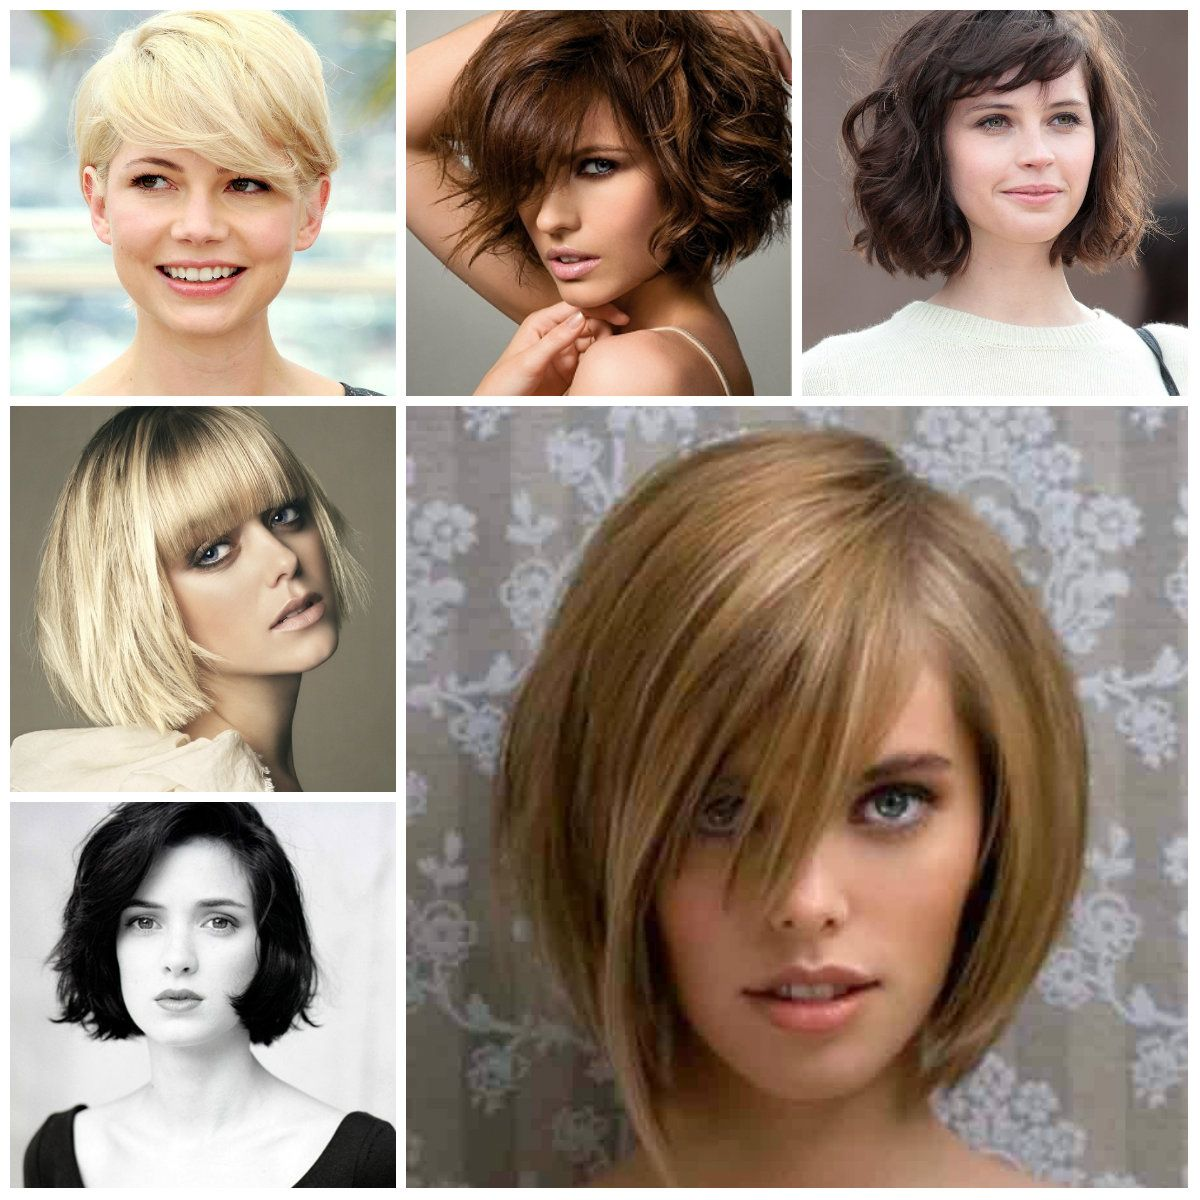 Miraculous Trendy Hairstyles Hairstyles And Short Hairstyles On Pinterest Short Hairstyles Gunalazisus